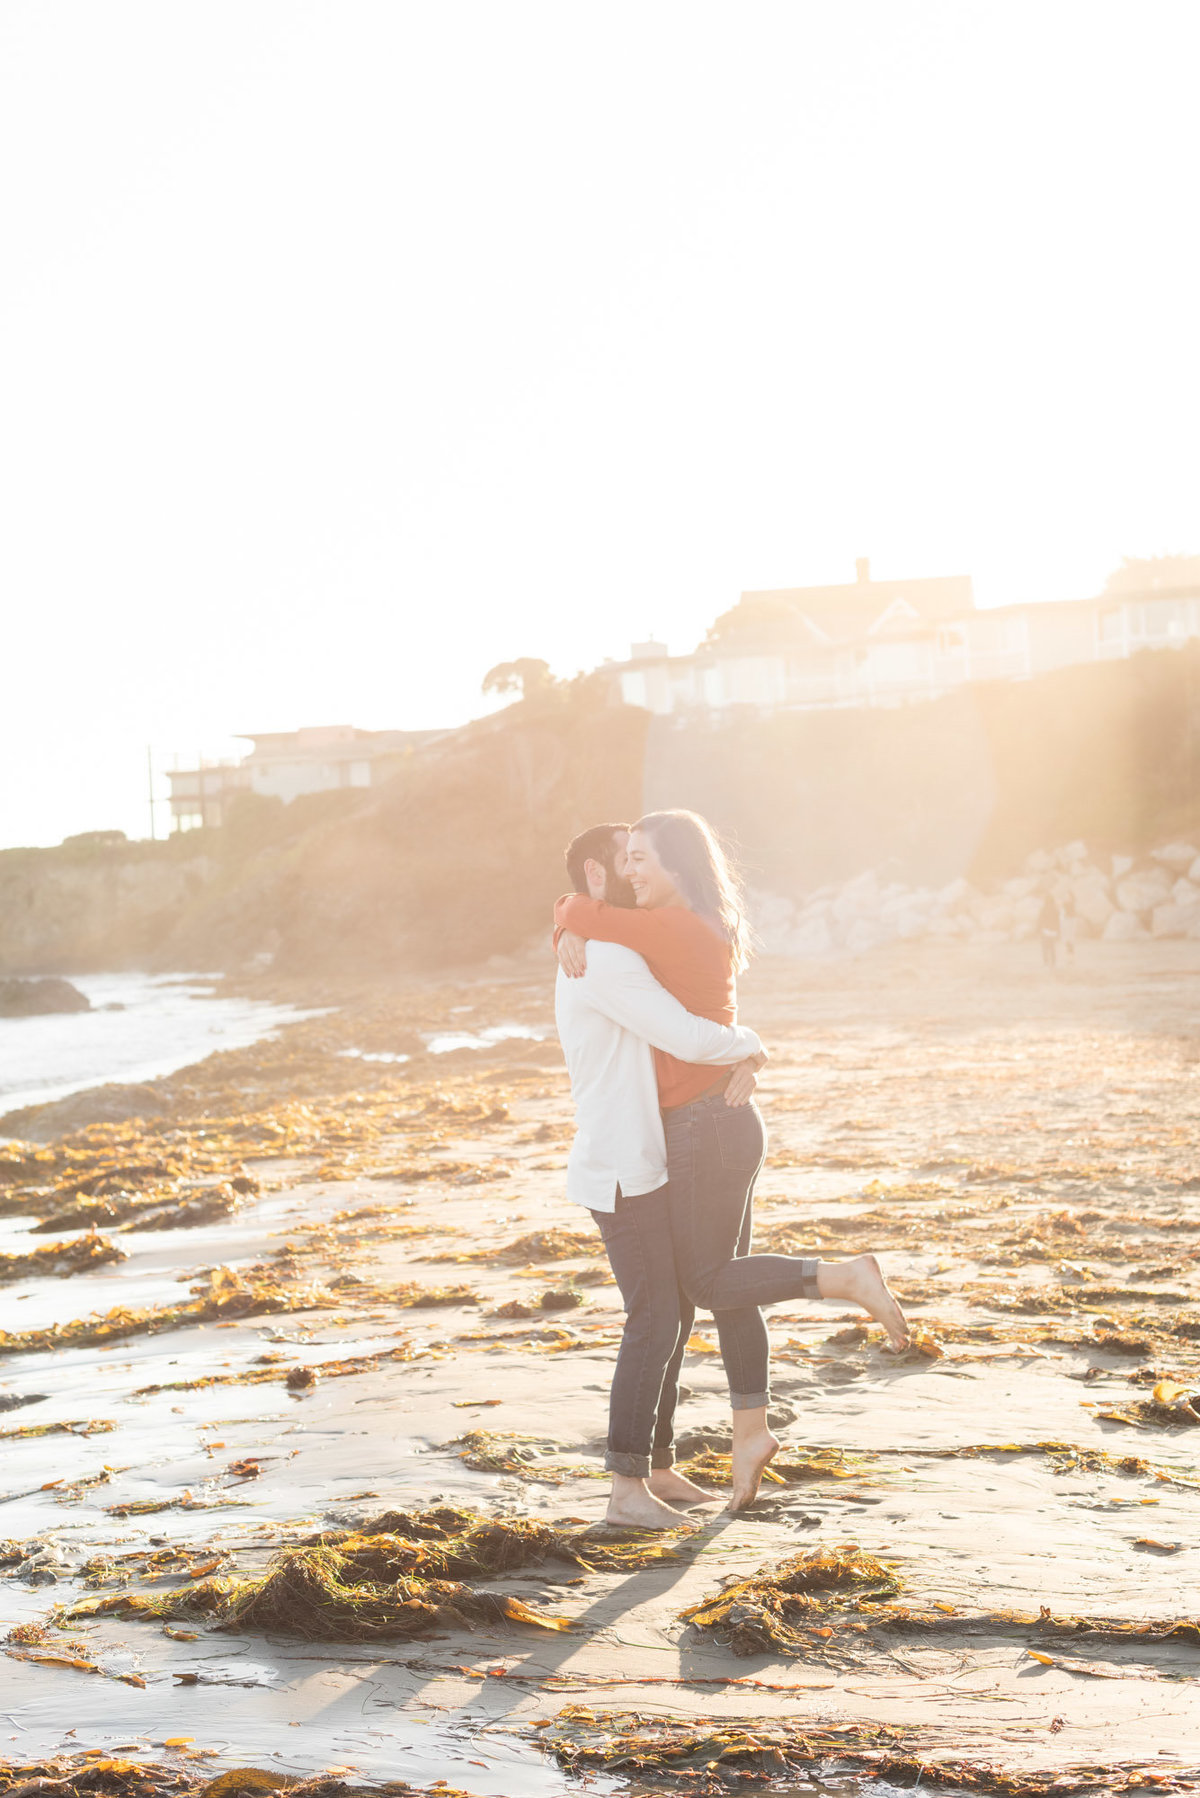 Central-Coast-Engagement-Session-by-San-Luis-Obispo-Wedding-Photographer-Kirsten-Bullard-20